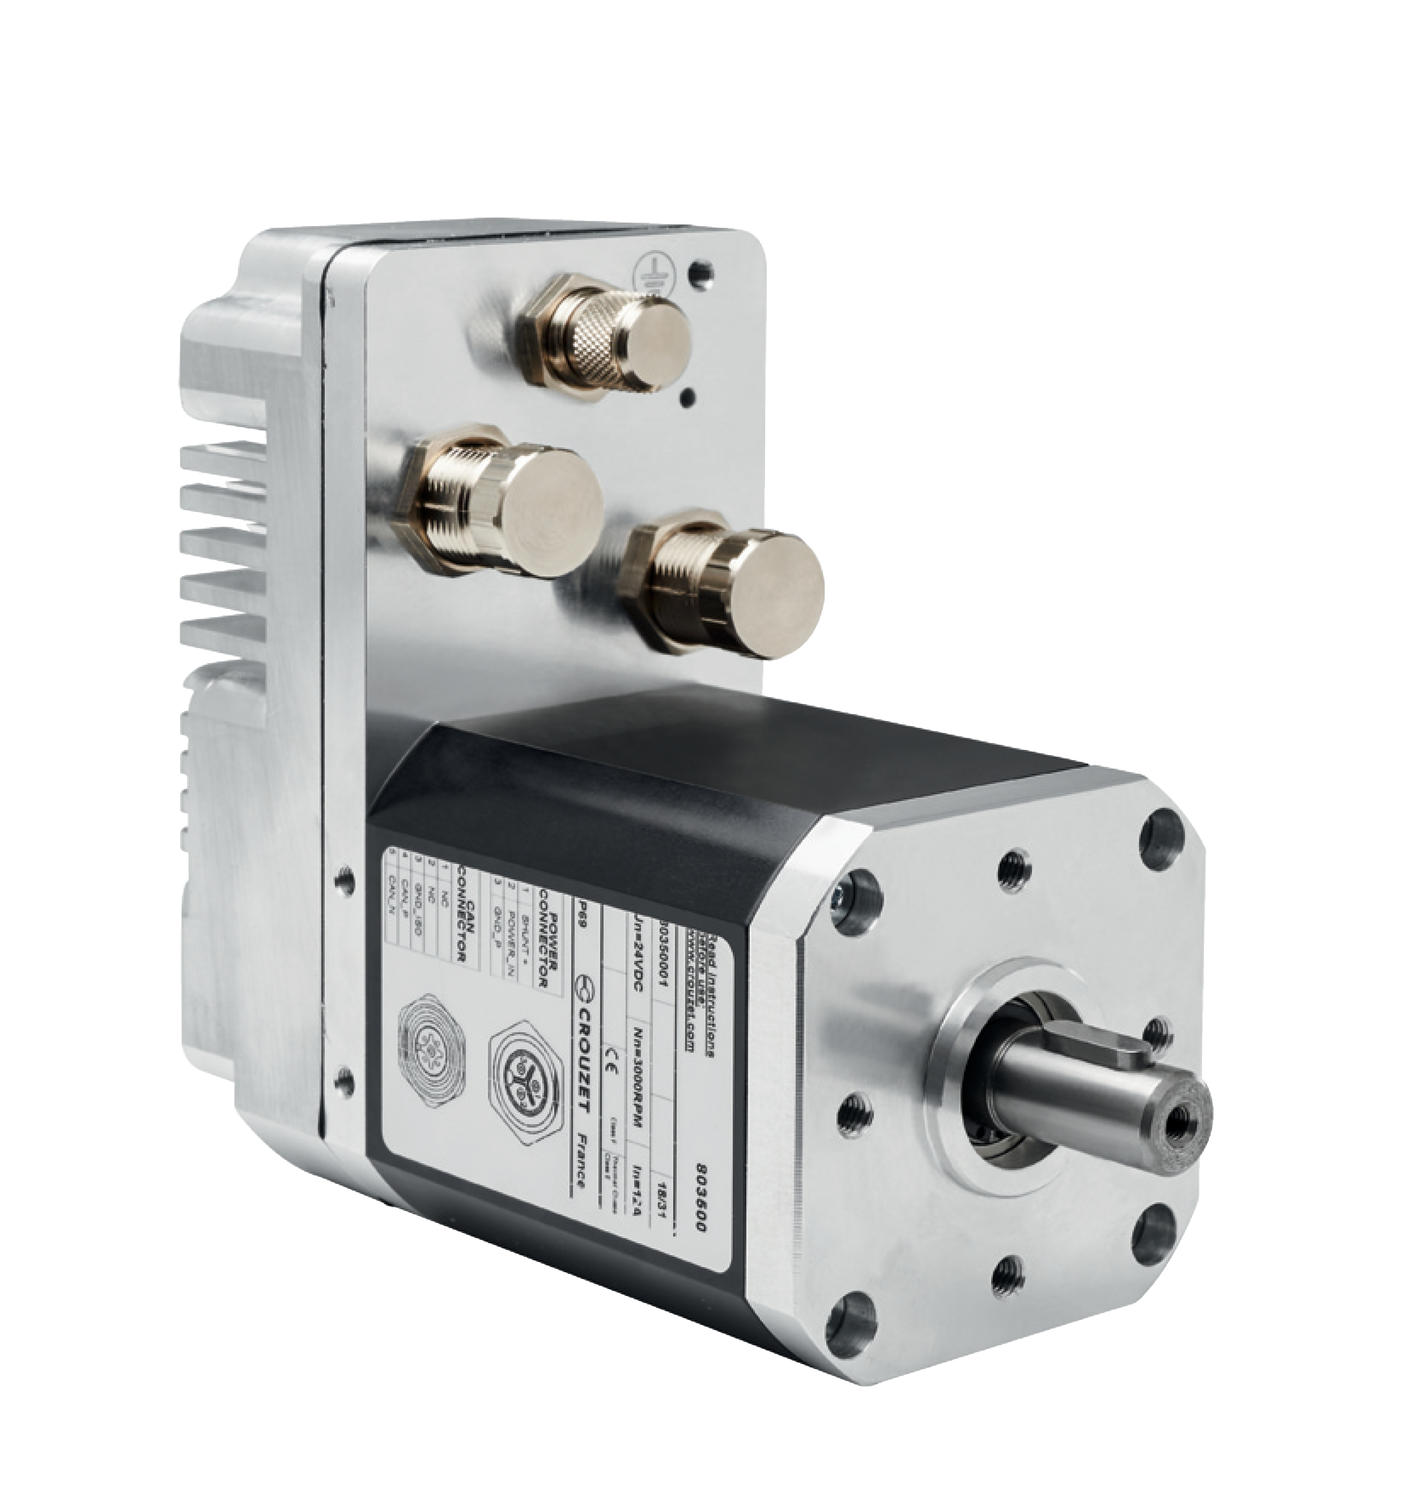 BLDC SQ75 motor with integrated SMi22 CANopen drive